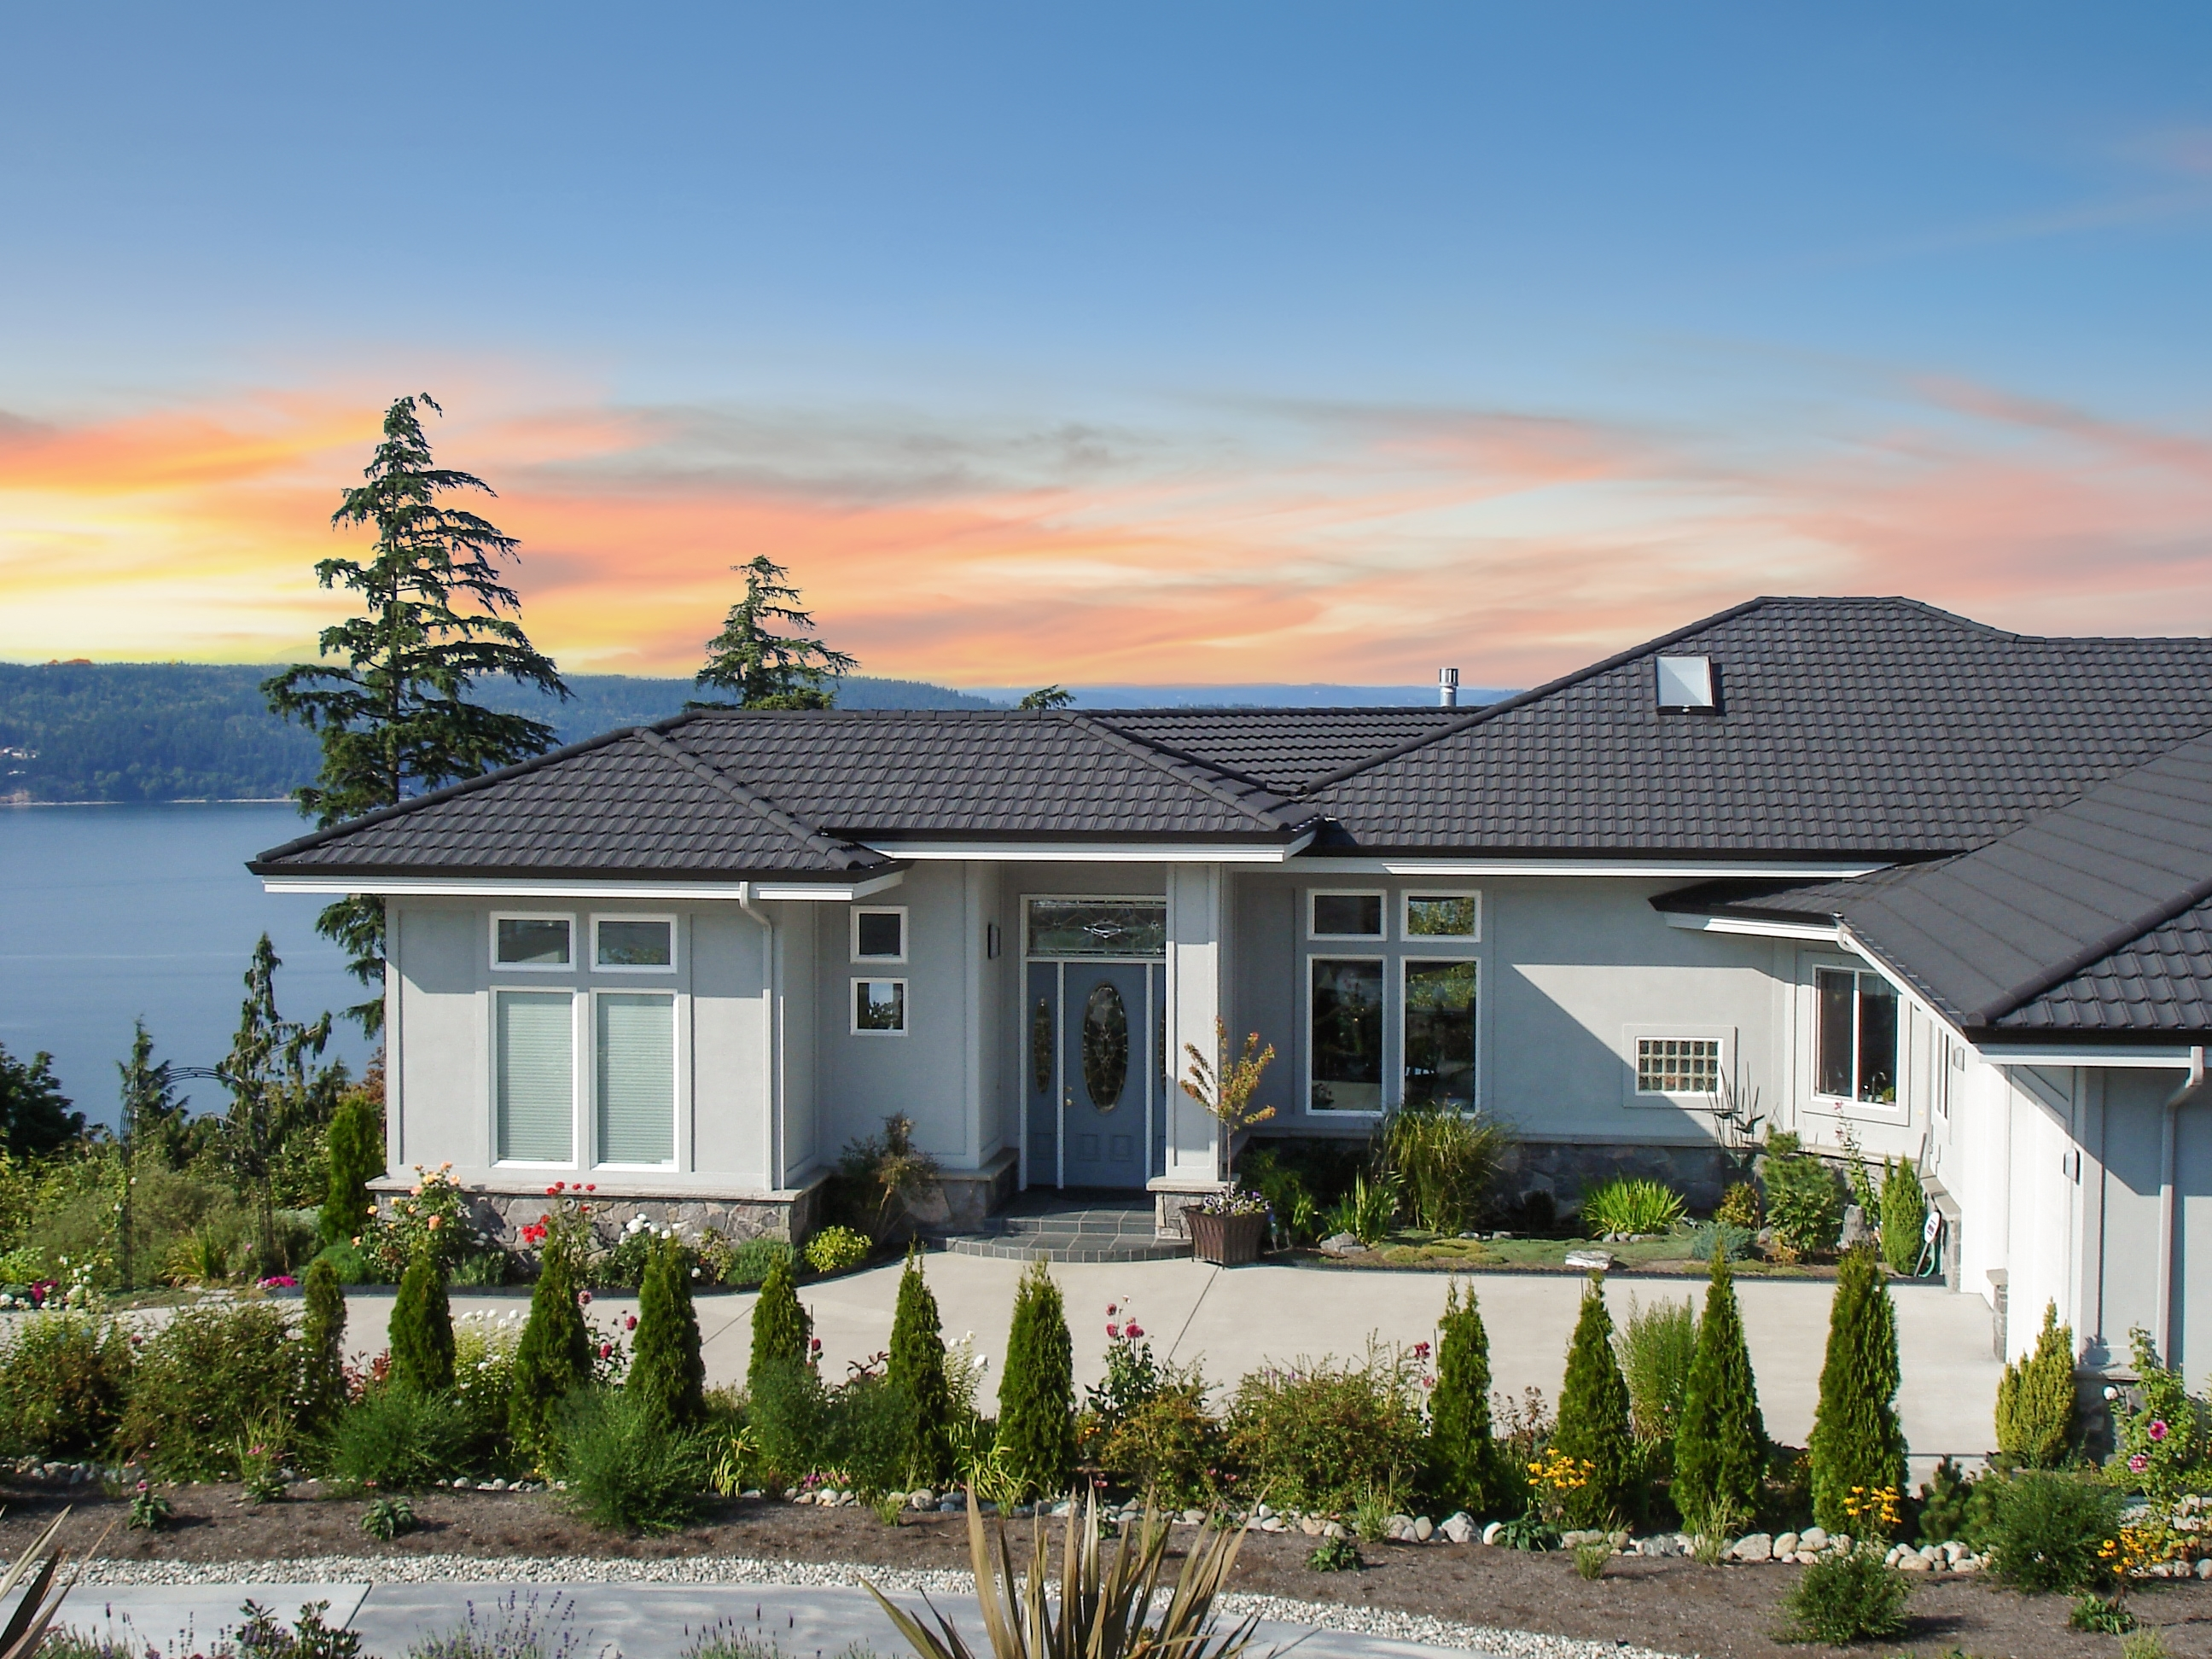 Best Roofing Material for Coastal and Beach City Homes